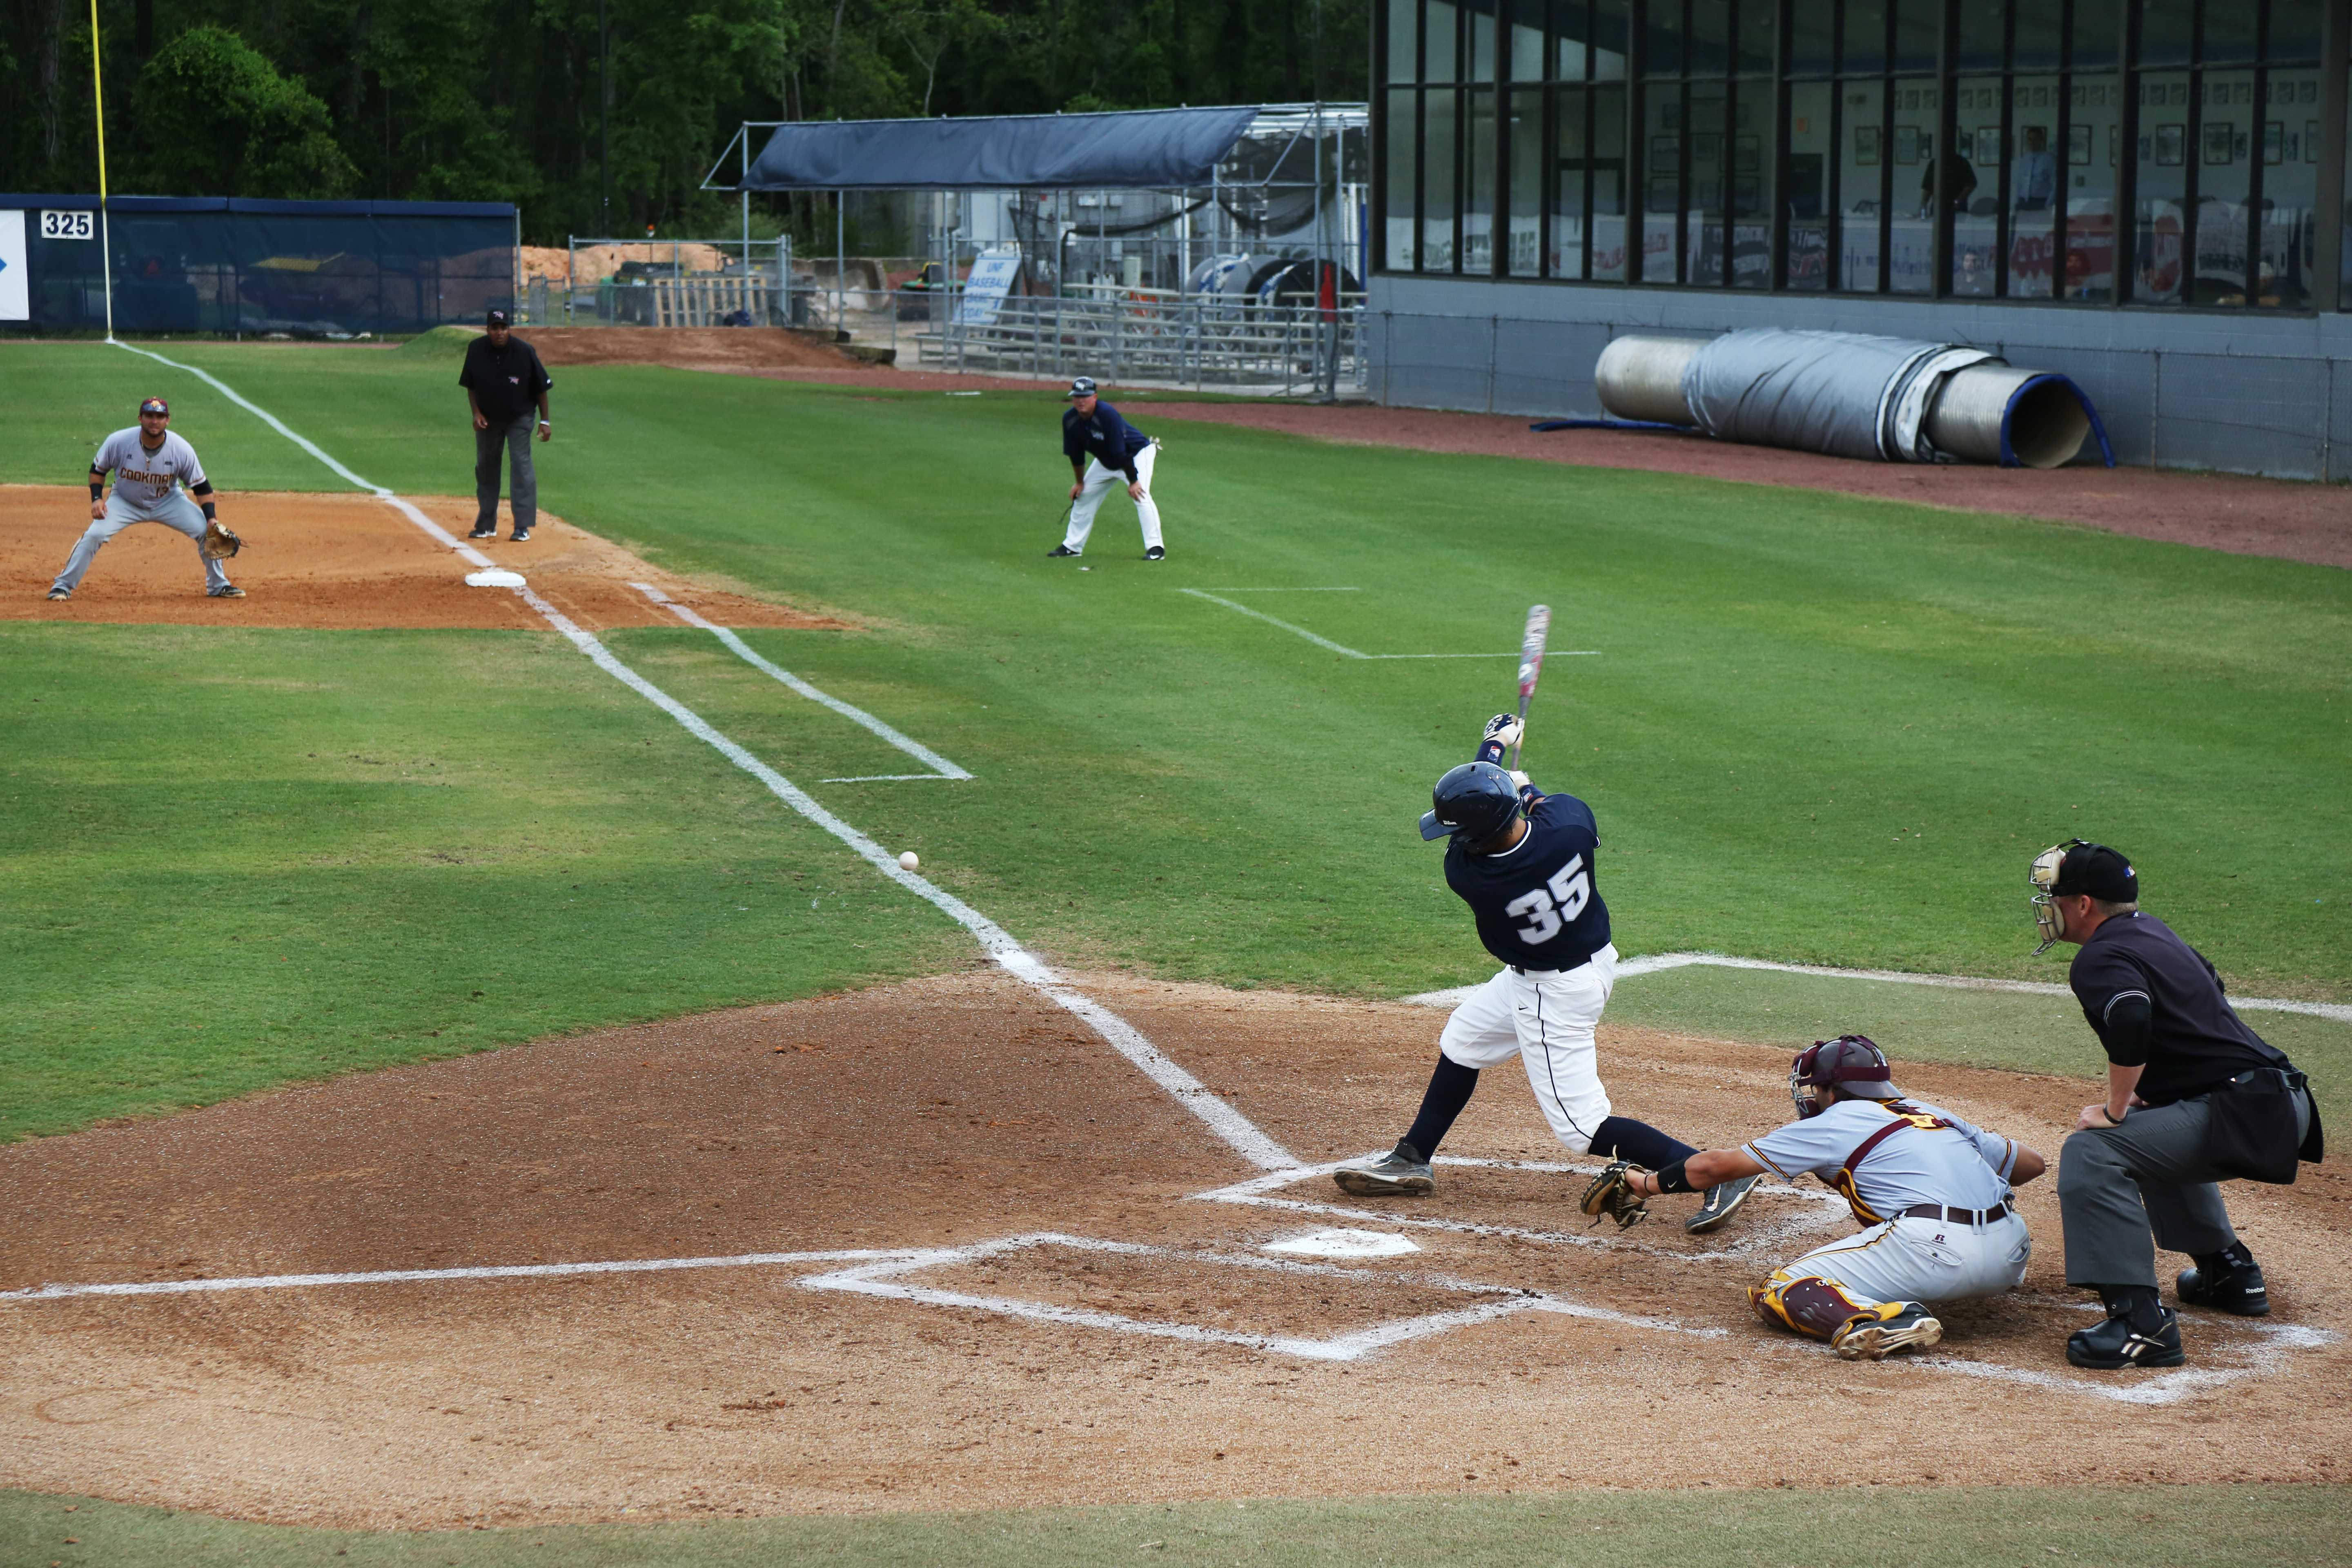 The Ospreys have now beaten Bethune-Cookman in five of the last six games. Photo by UNF Spinnaker